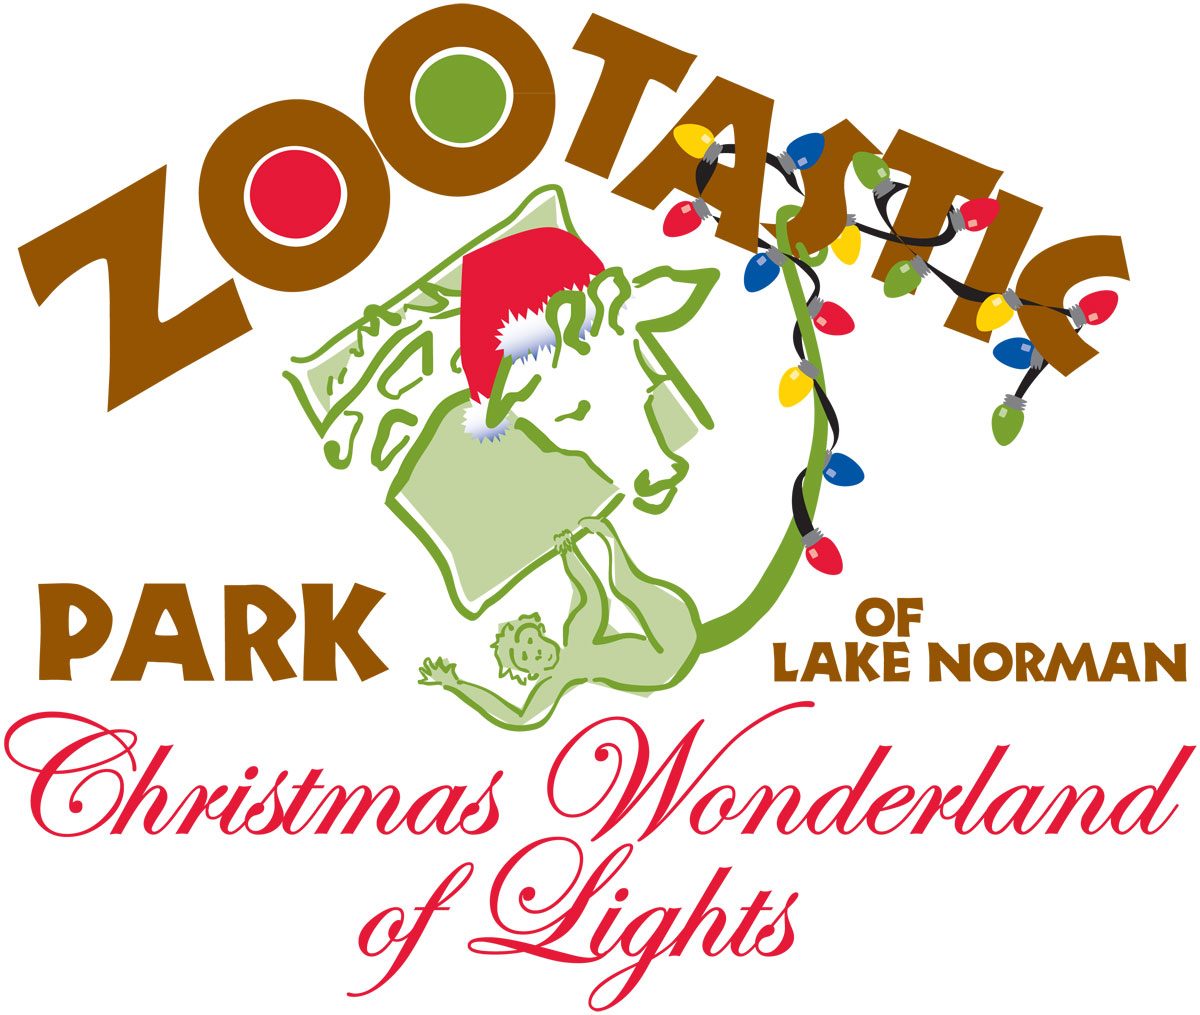 The Christmas Wonderland of Lights features over 3.5 Million Lights over a 2 mile drive-through and ends with a light show set to music in our Western Town.